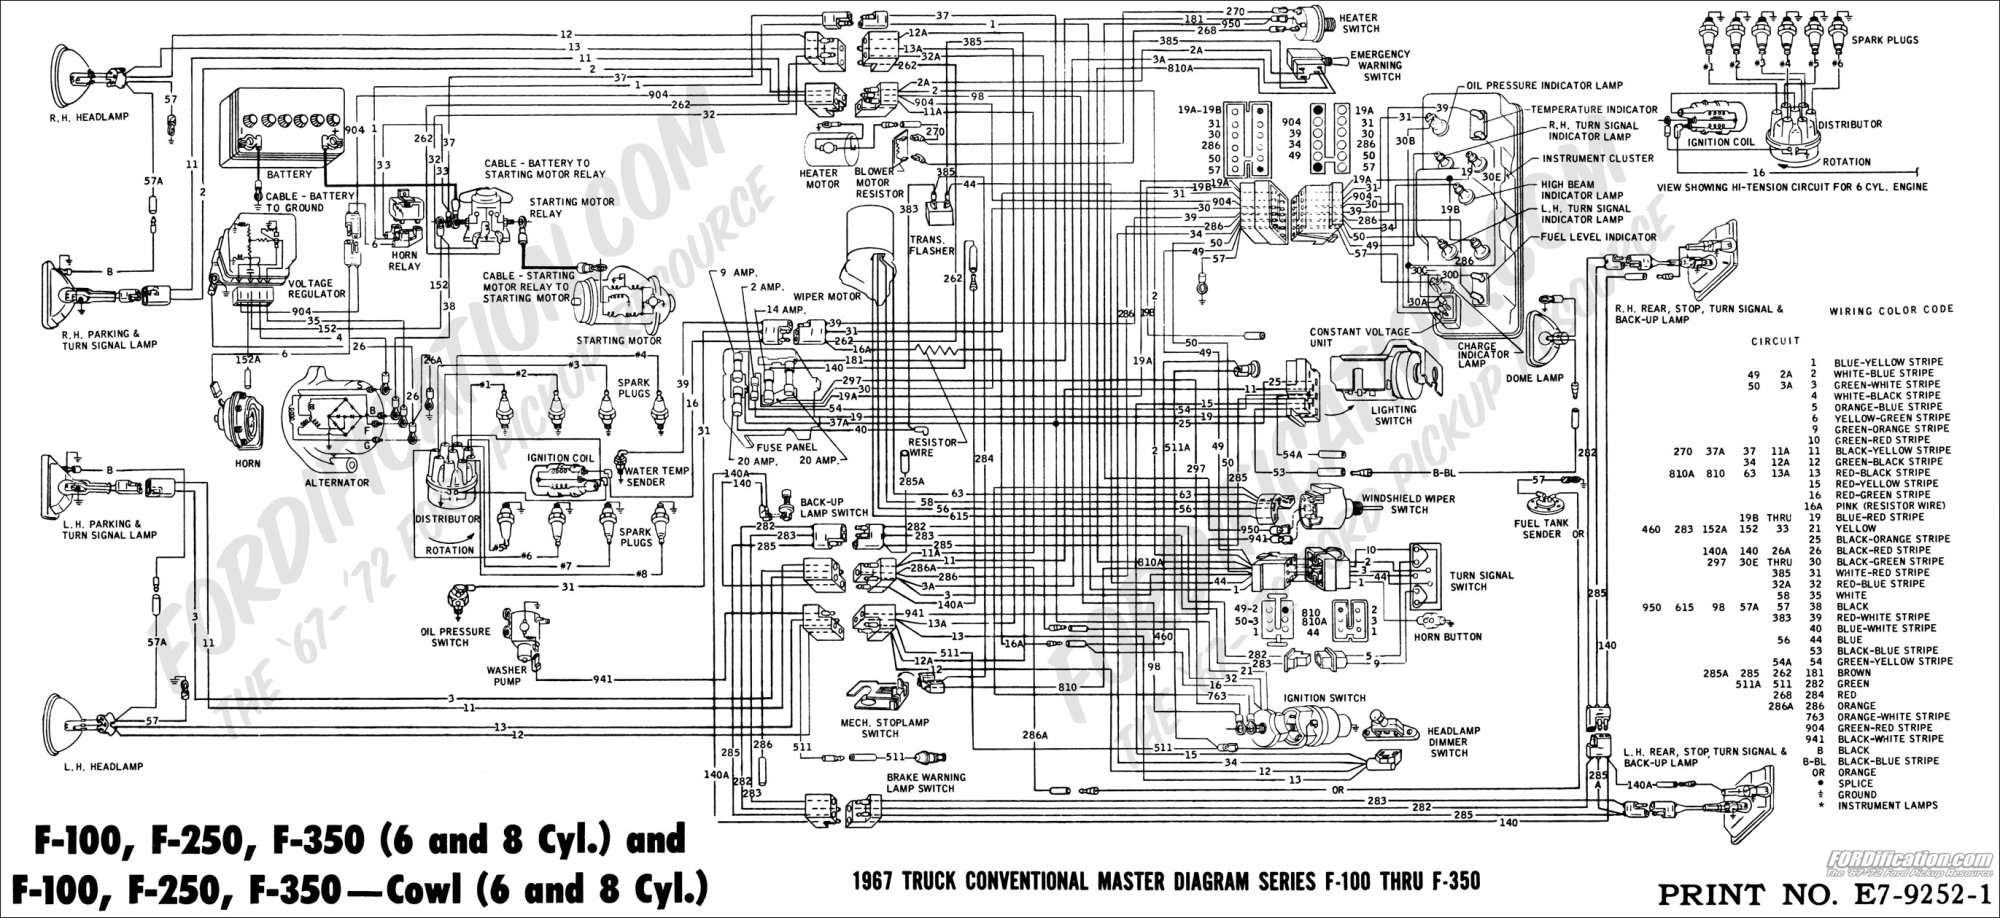 hight resolution of 1990 f150 wiring diagram wiring diagram explained ford fuel pump wiring diagram 1990 f150 wiring diagram